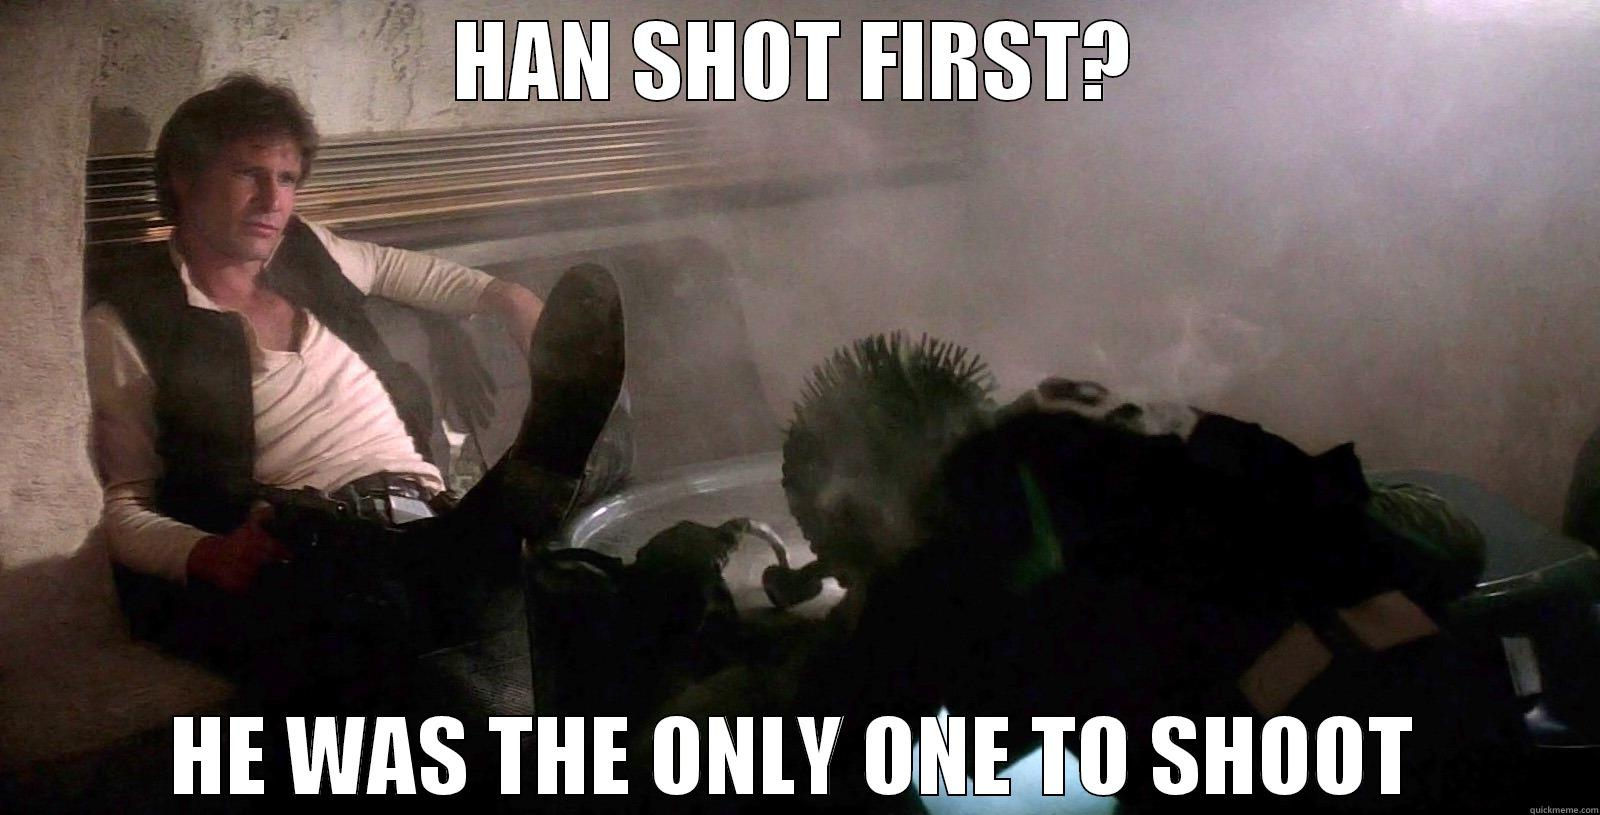 Han shot first - and he was the only one to shoot